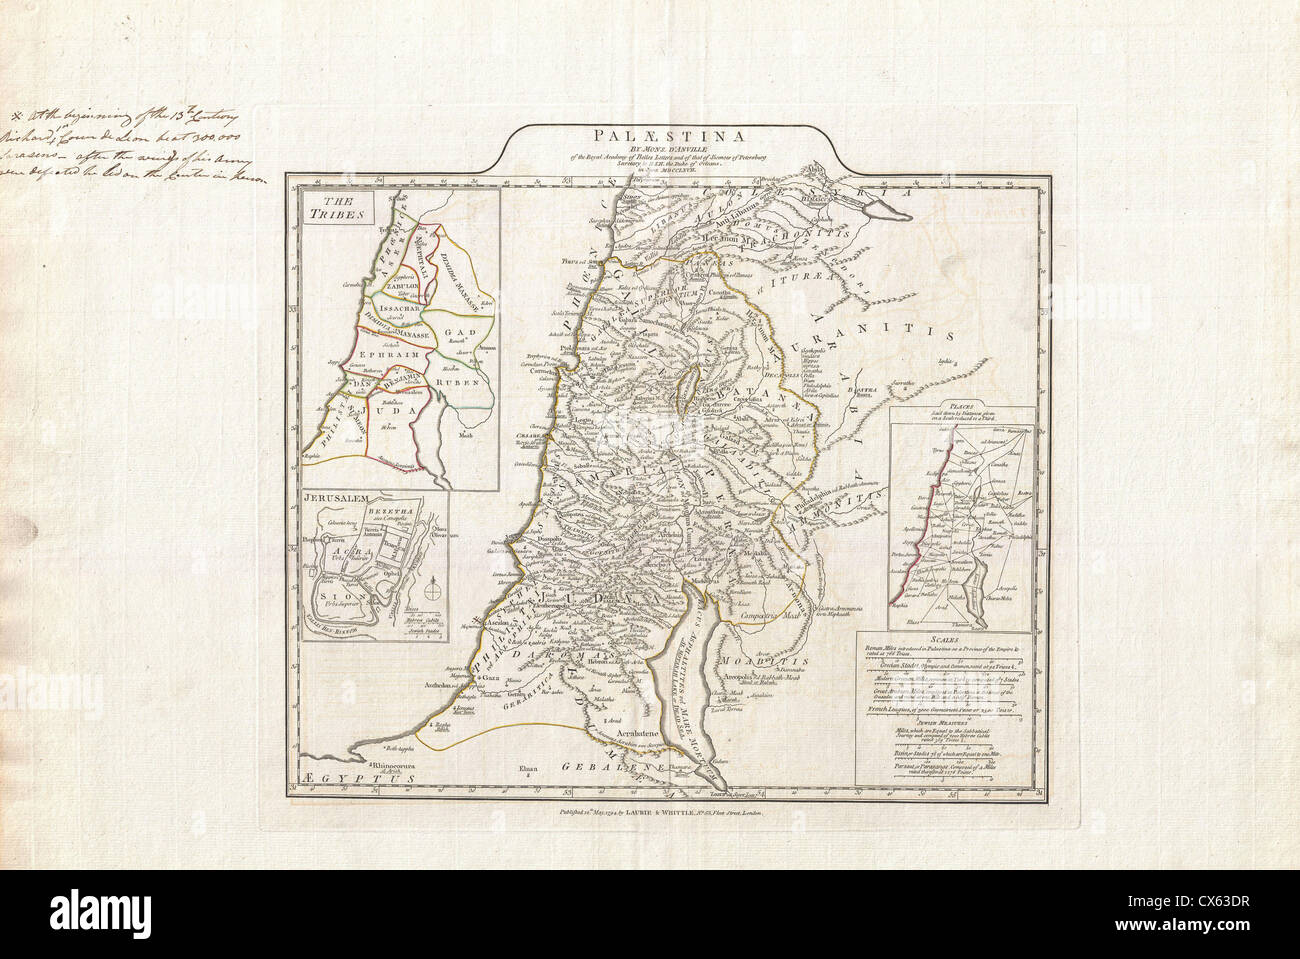 1794 Anville Map of Israel, Palestine or the Holy Land in Ancient Times - Stock Image